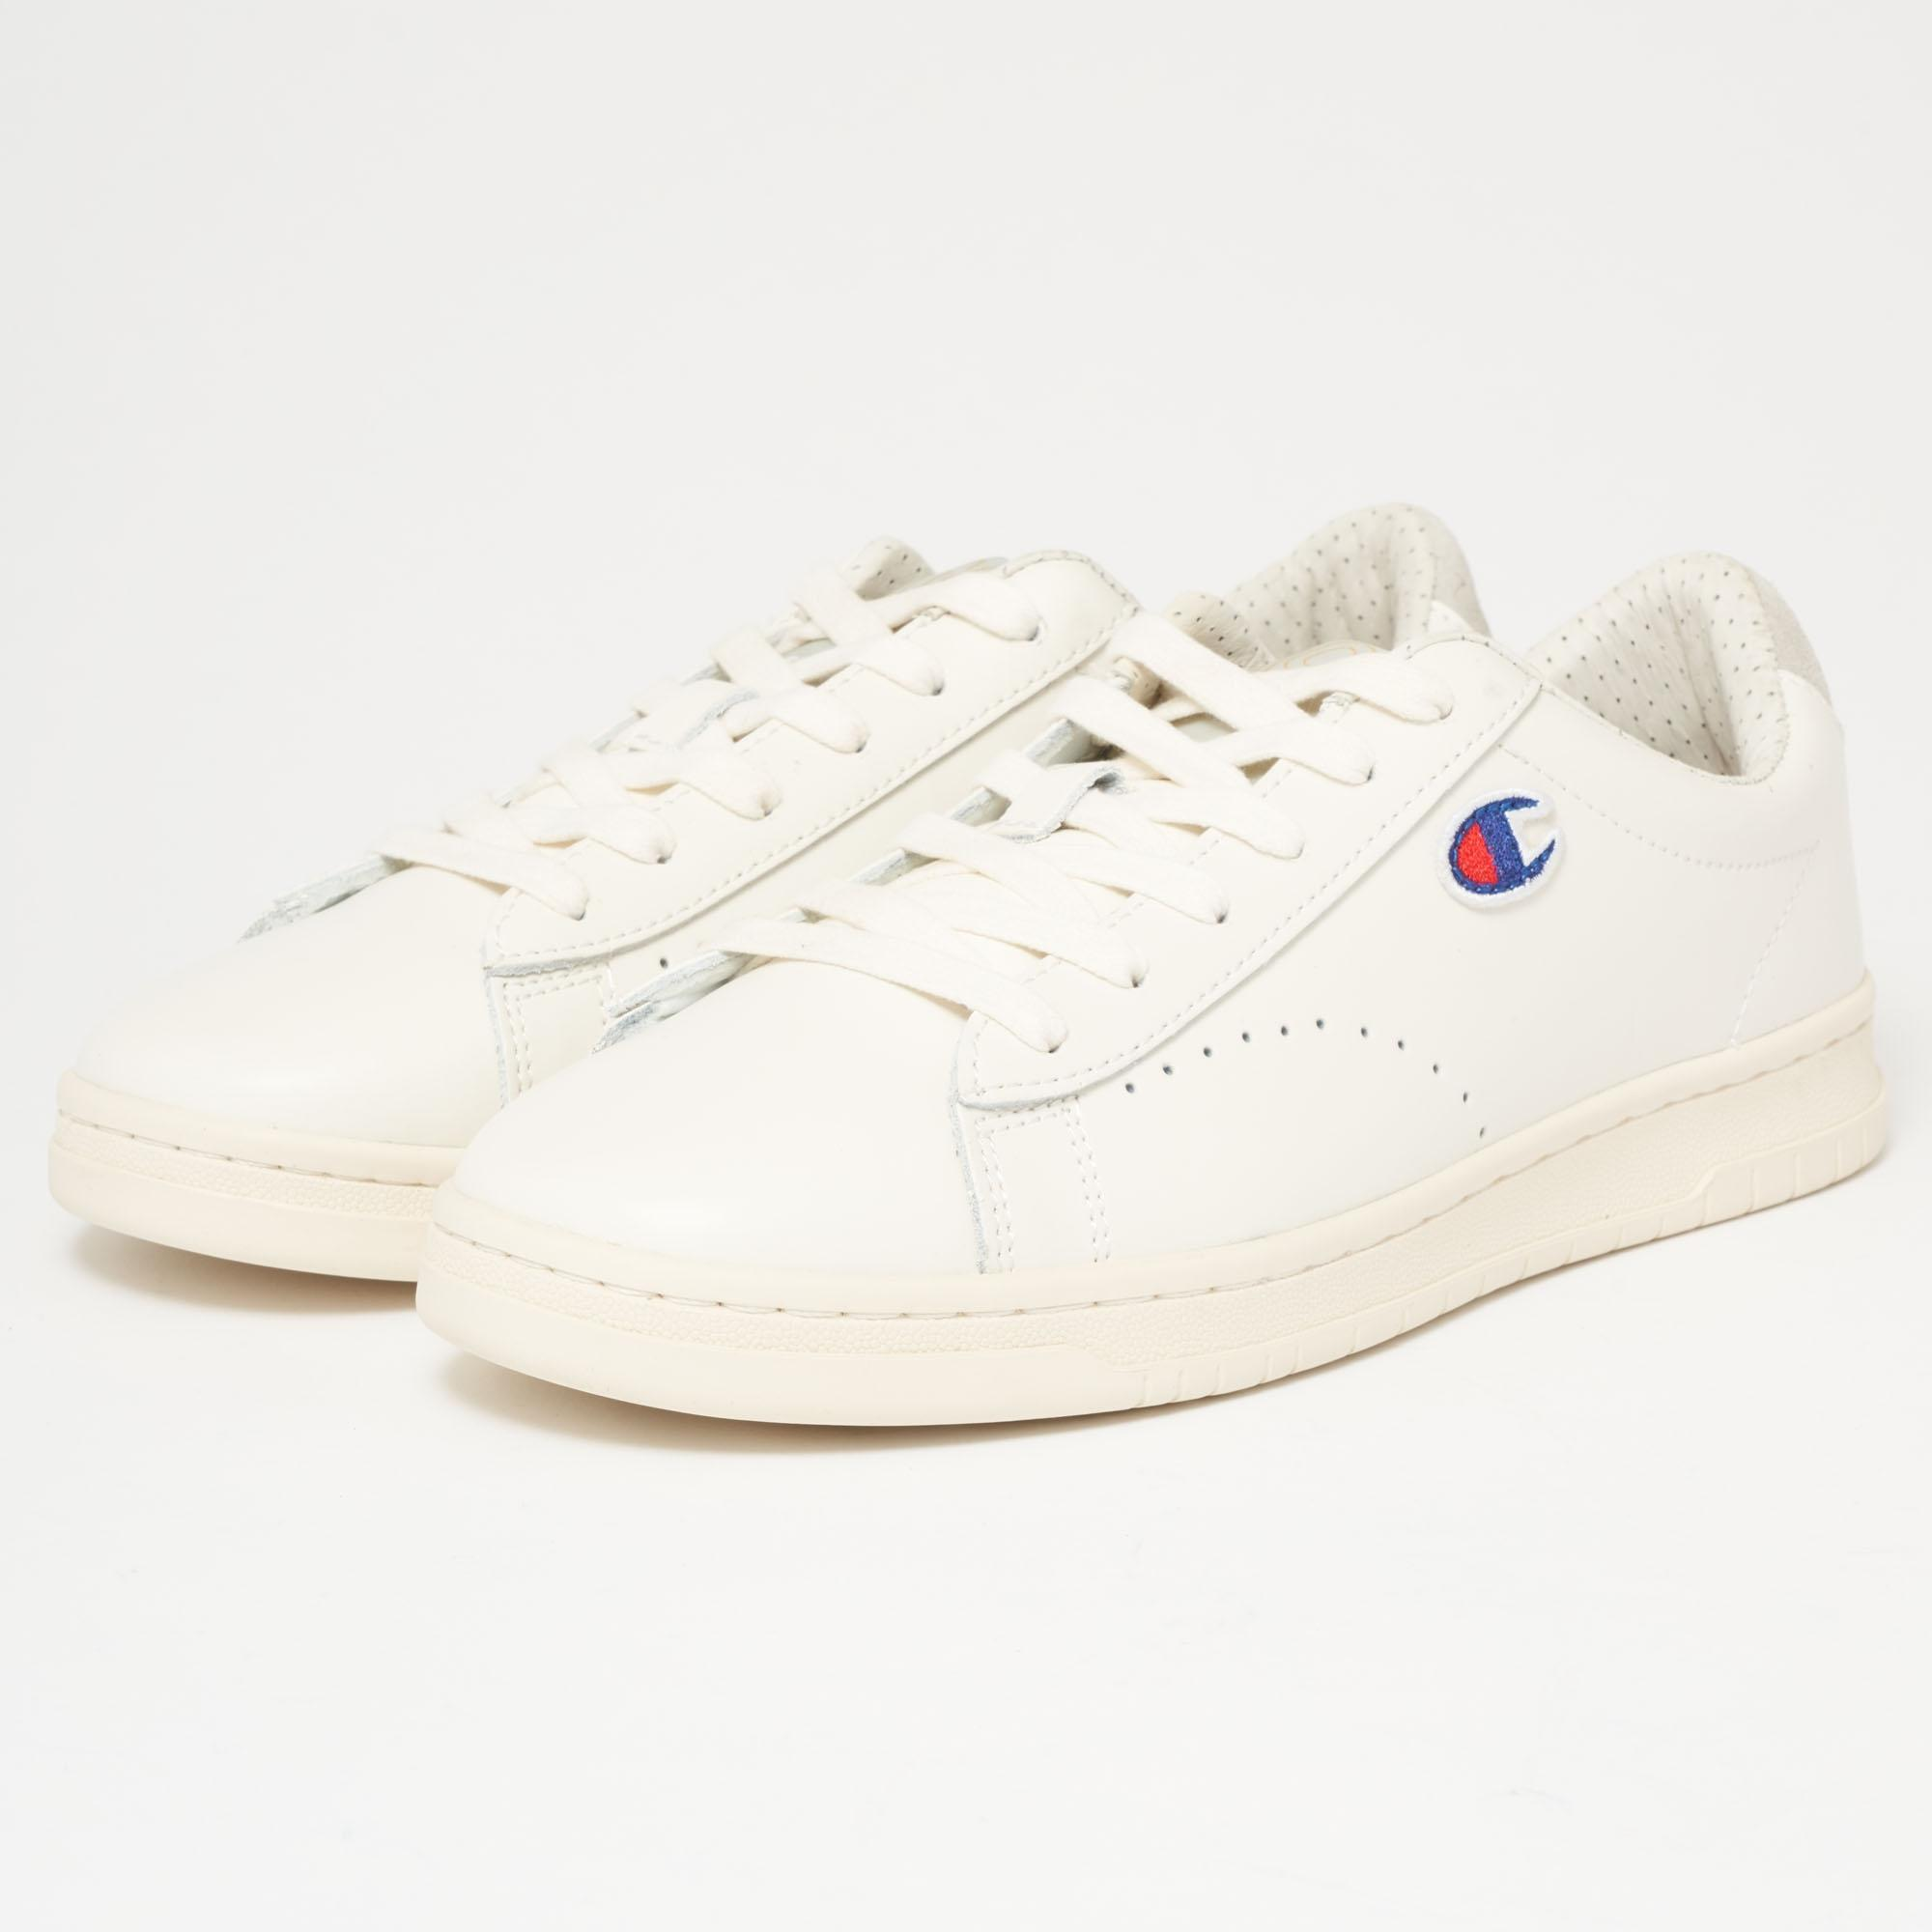 85cf52e0e4a25 Lyst - Champion 919 Low Top  c  Patch Trainers in White for Men ...